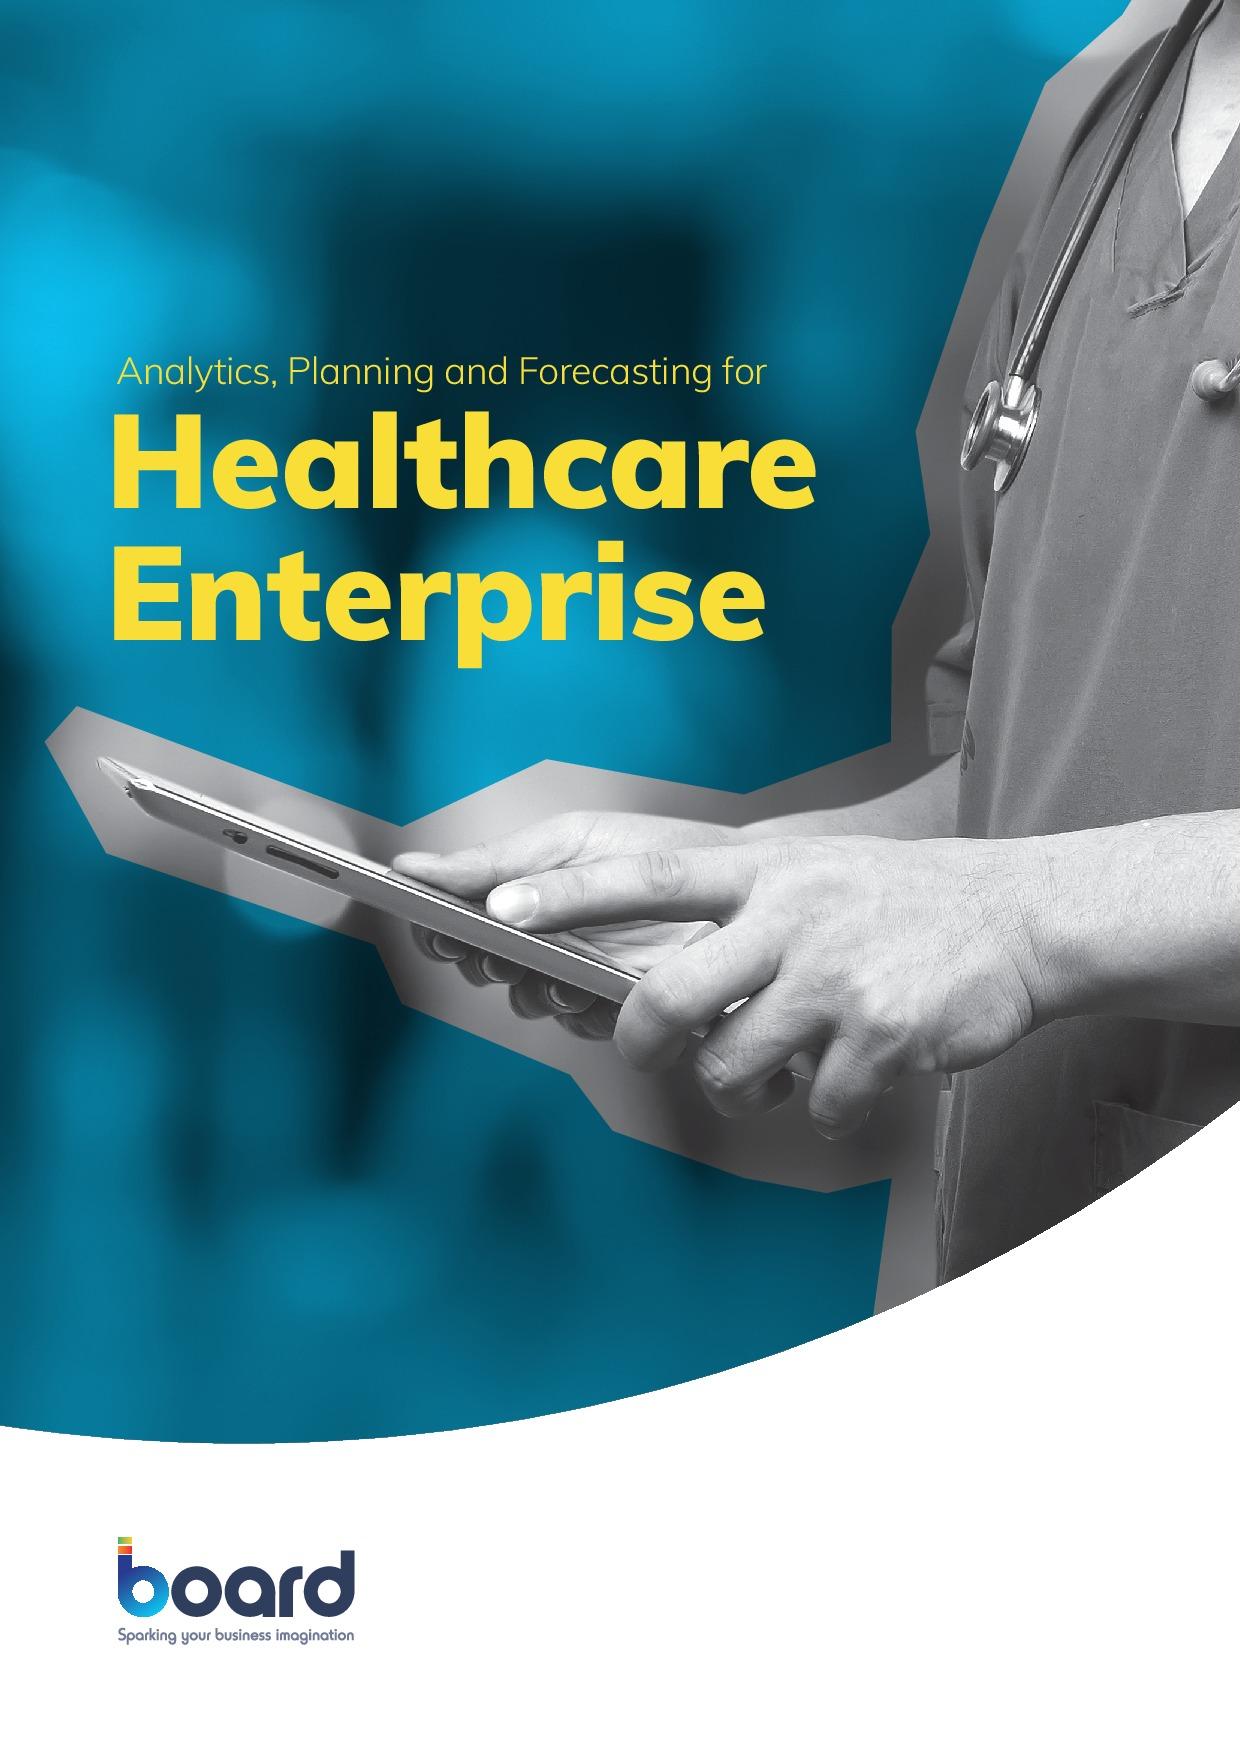 Healthcare Enterprise Analytics, Planning and Forecasting